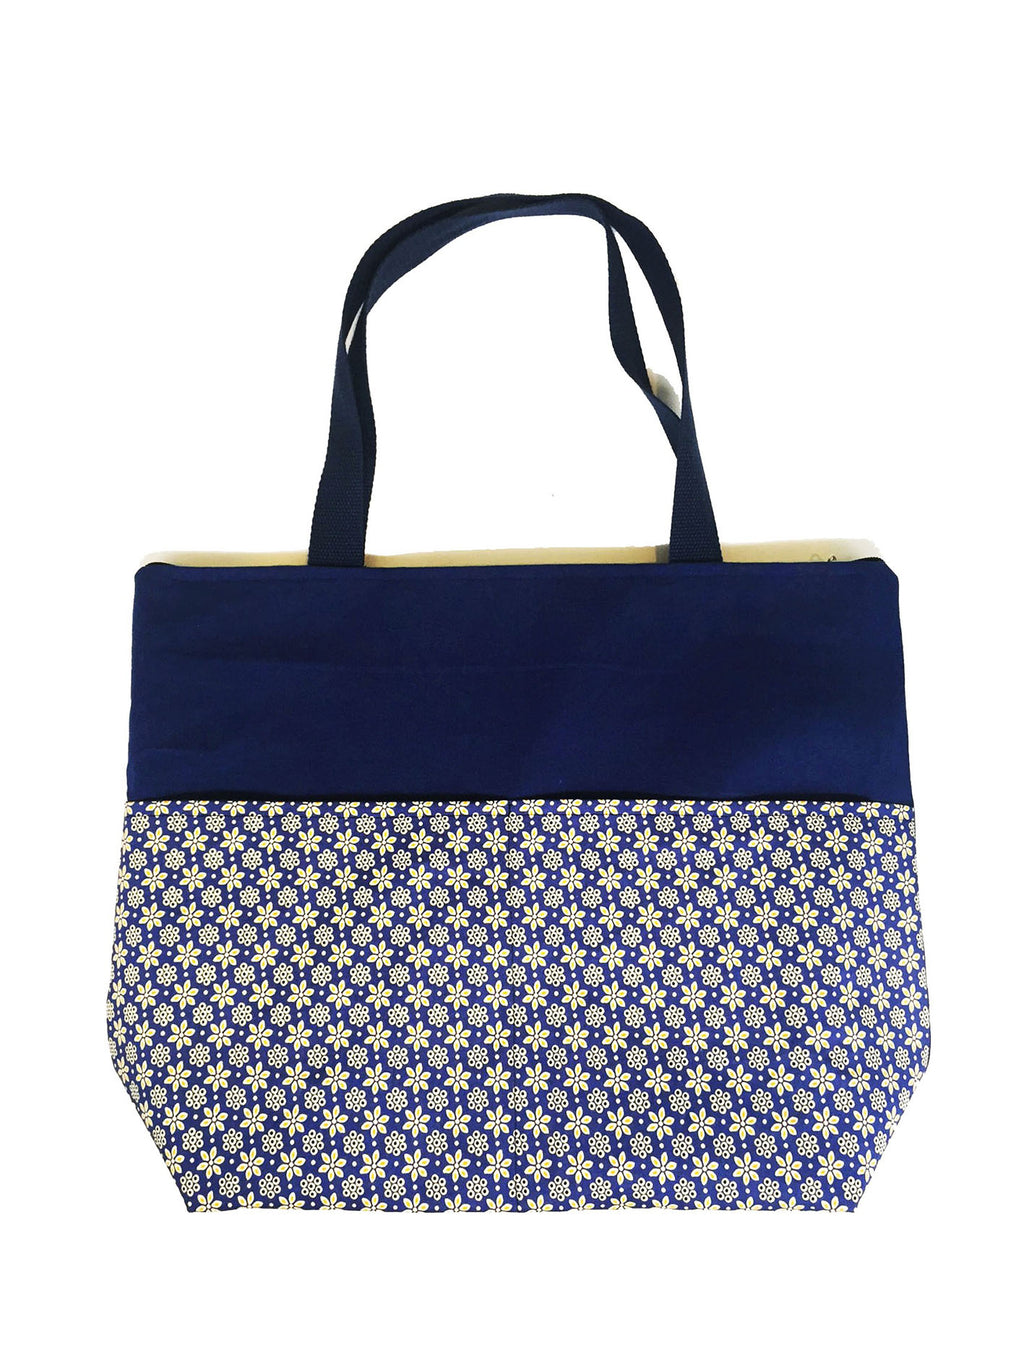 CWO Medium Tote Bag with Zipper (Floral Pattern)